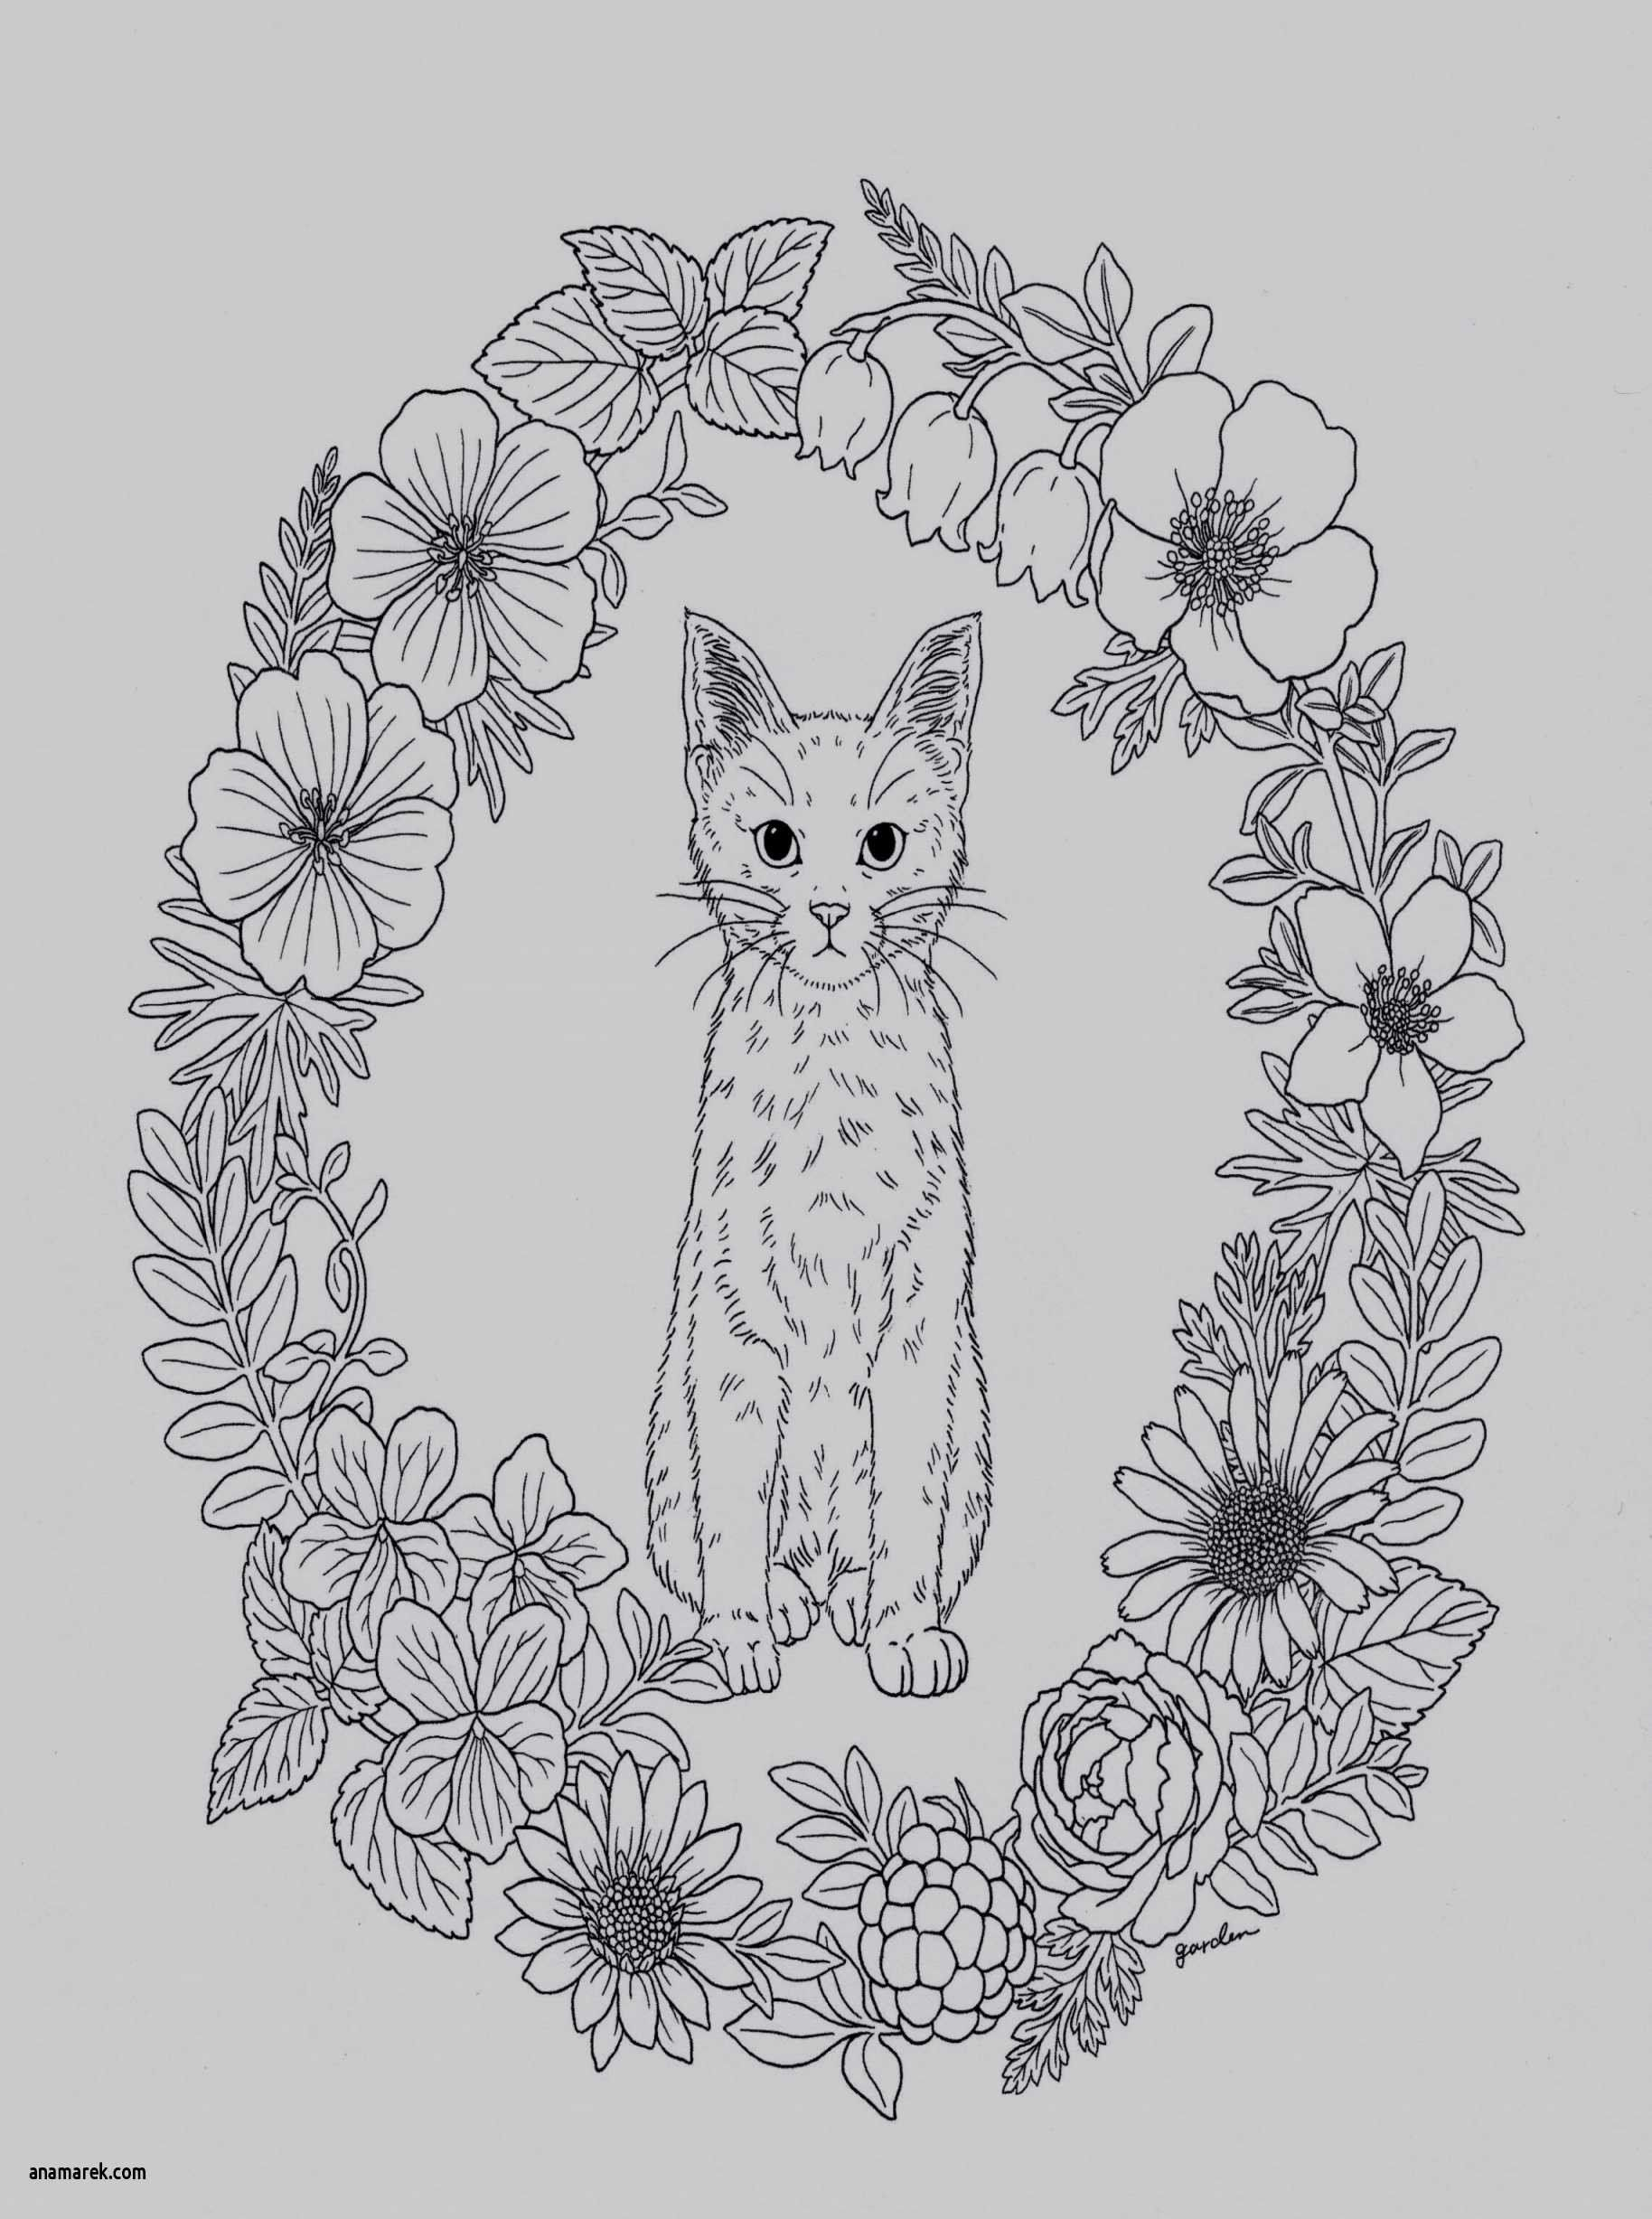 Kitty Cat Coloring Pages Elegant Cute Kitten Coloring Pages Kanta In 2020 Unicorn Coloring Pages Horse Coloring Pages Animal Coloring Pages